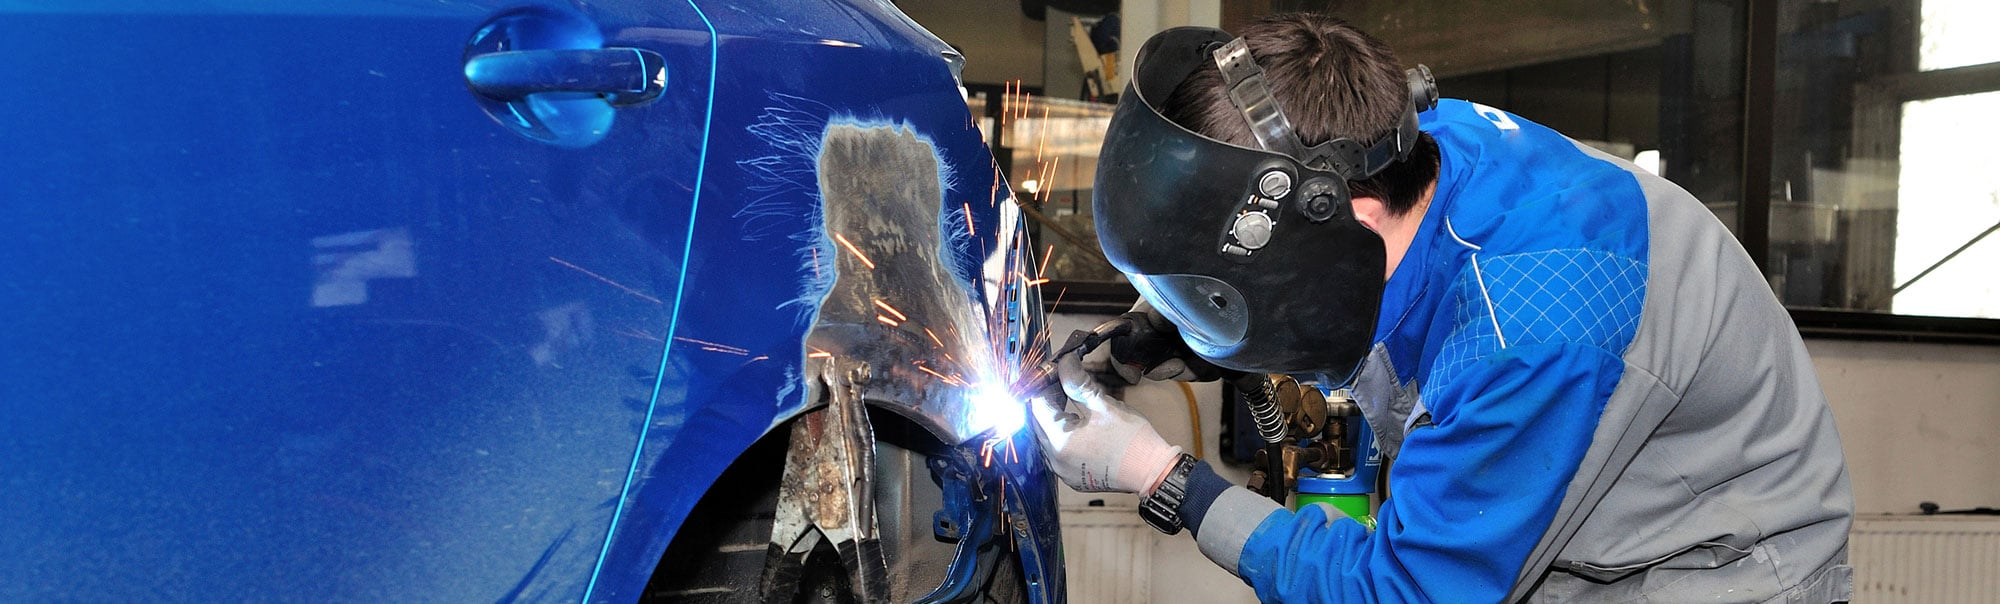 Body Pros welding part of a vehicles fender